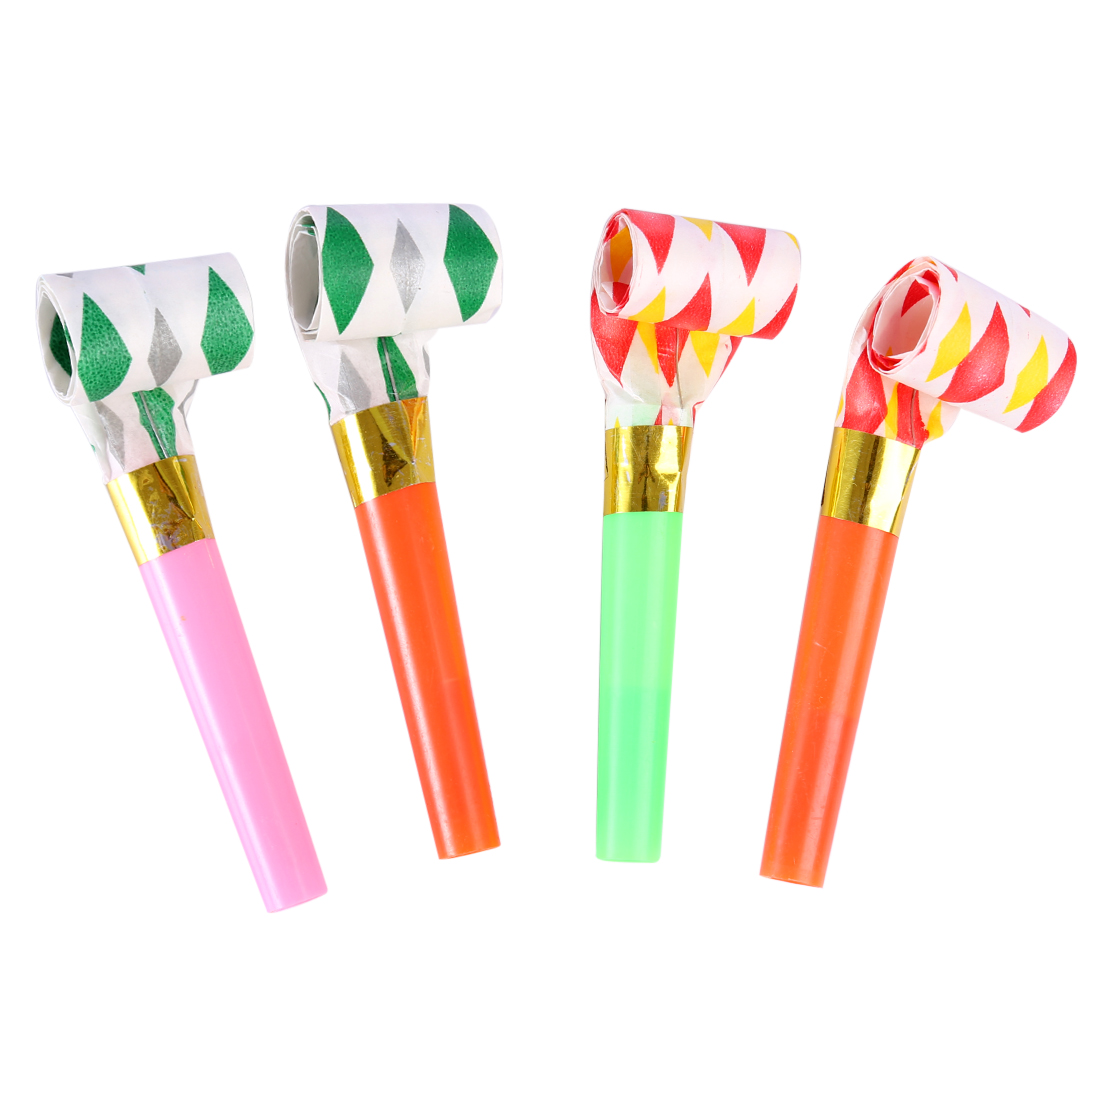 Rowsfire  Music Blowouts Whistles Toys Noisemakers For Children Birthday Party Halloween